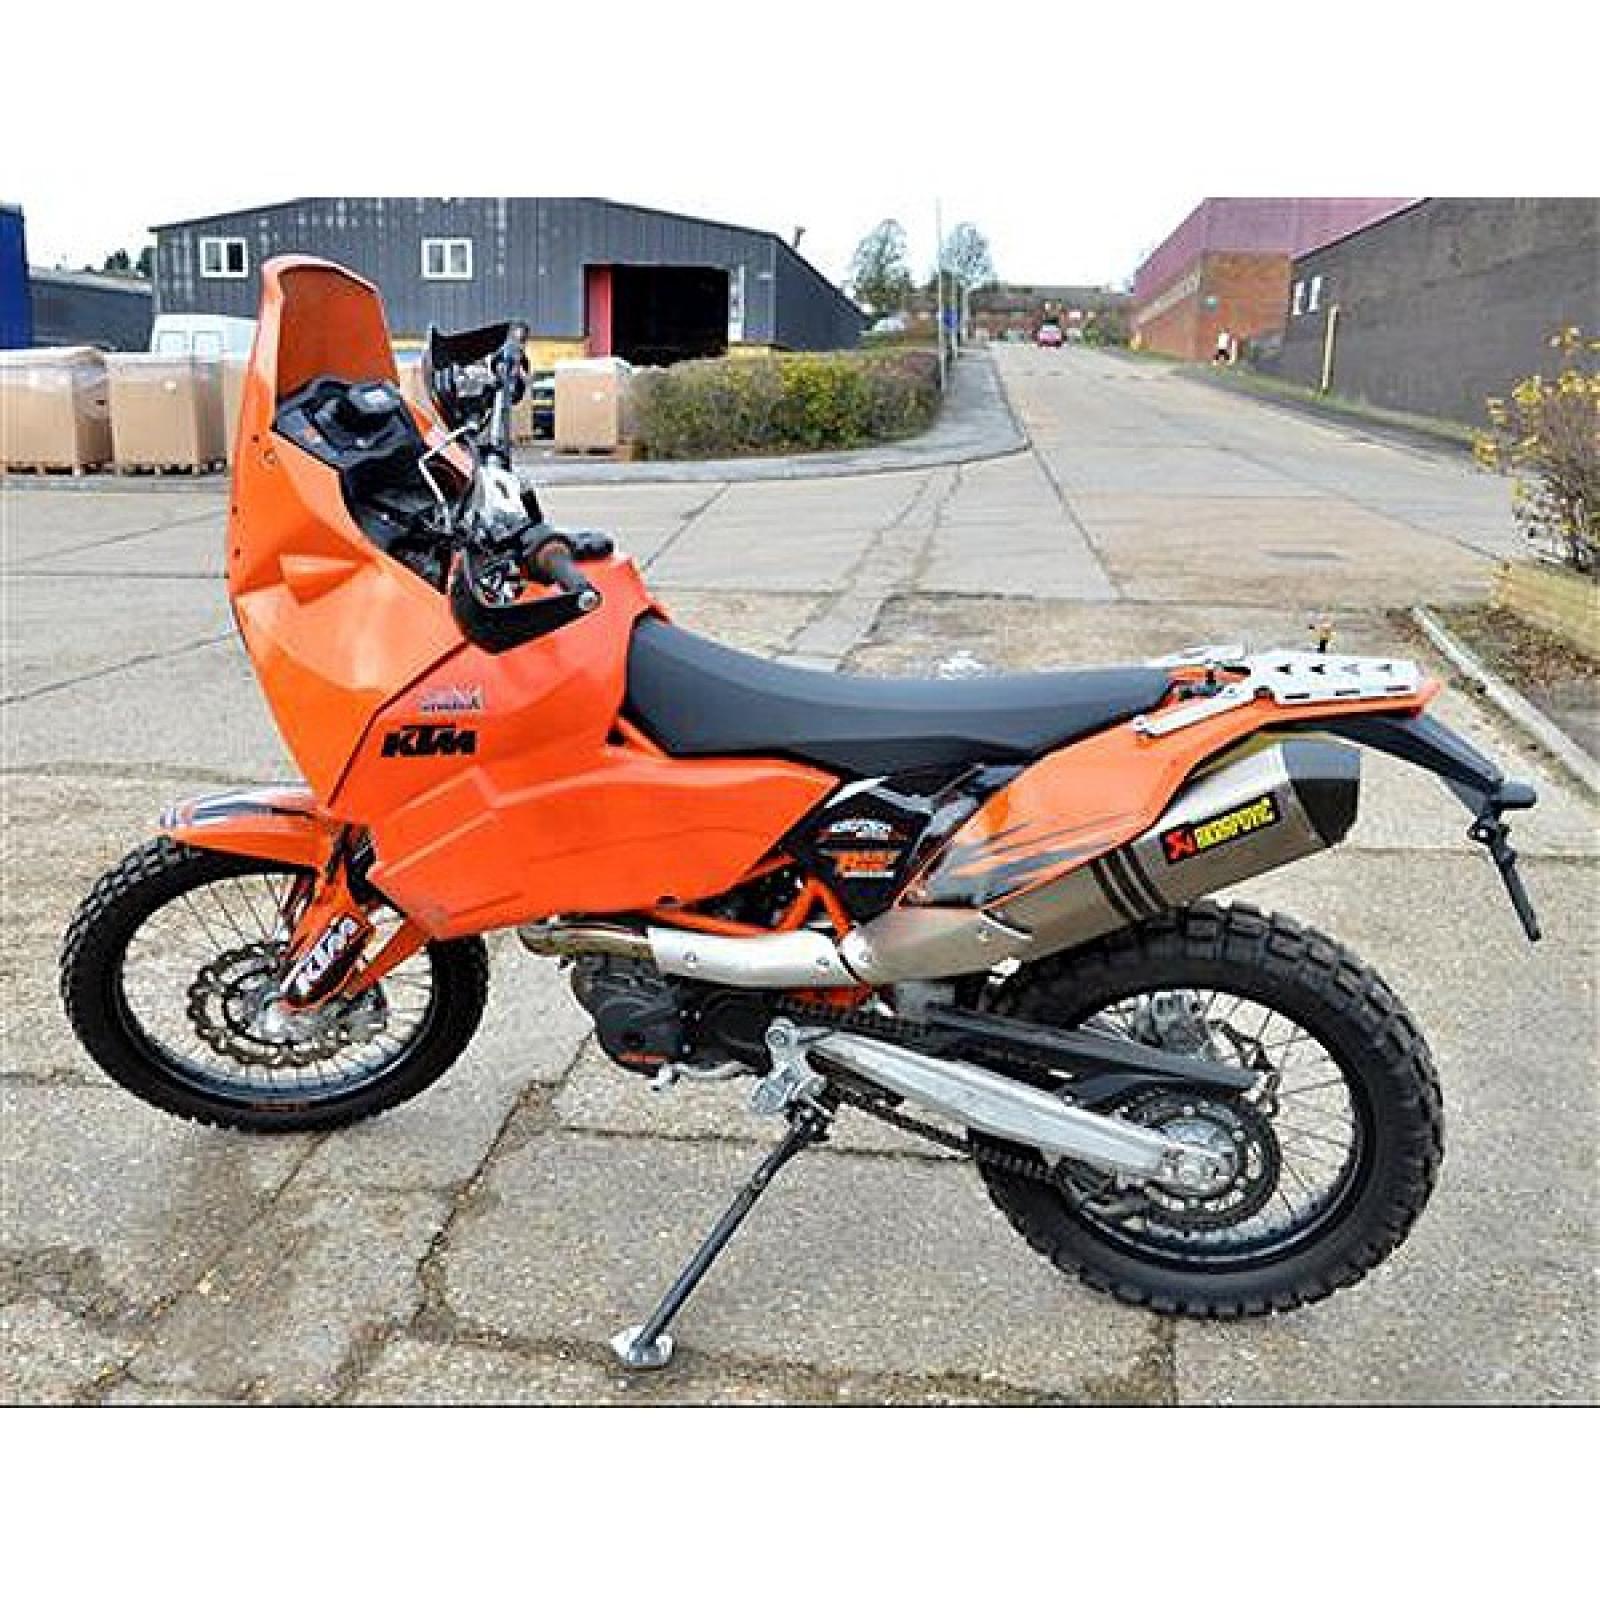 KTM Enduro 600 Rallye (reduced effect) #6